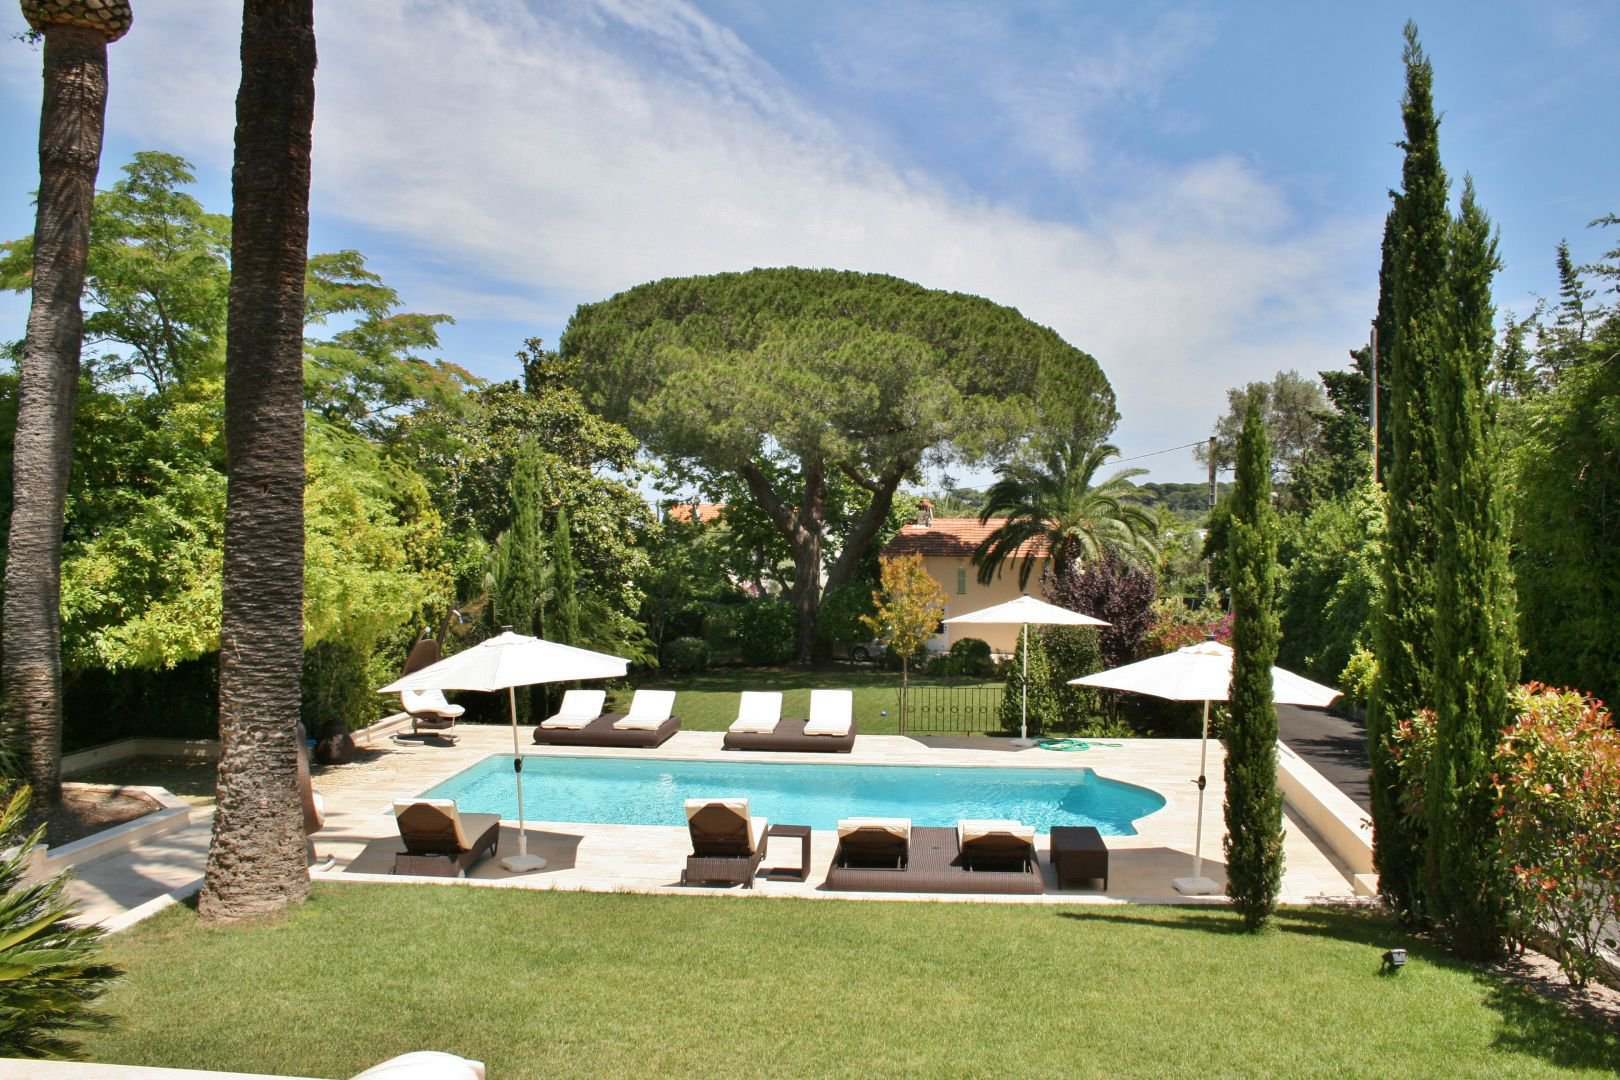 CAP D'ANTIBES LARGE PROPERTY FOR HOLIDAYS